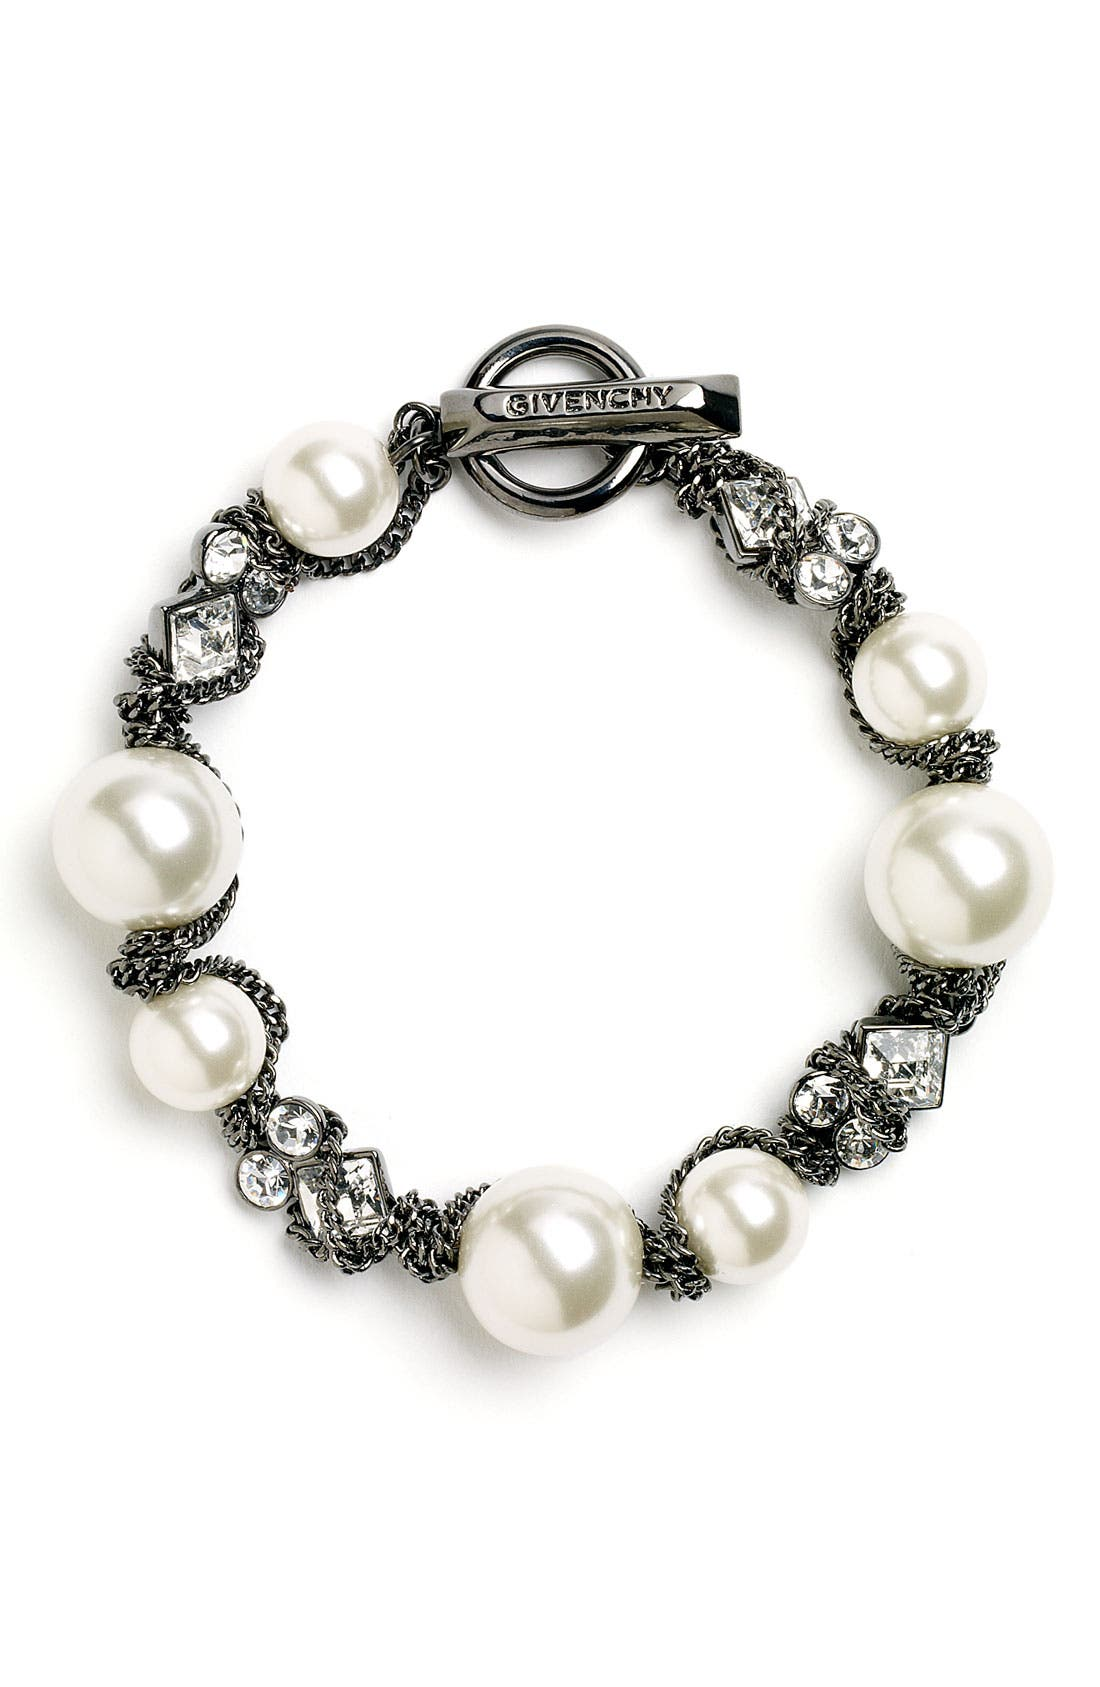 Main Image - Givenchy Small Faux Pearl Bracelet